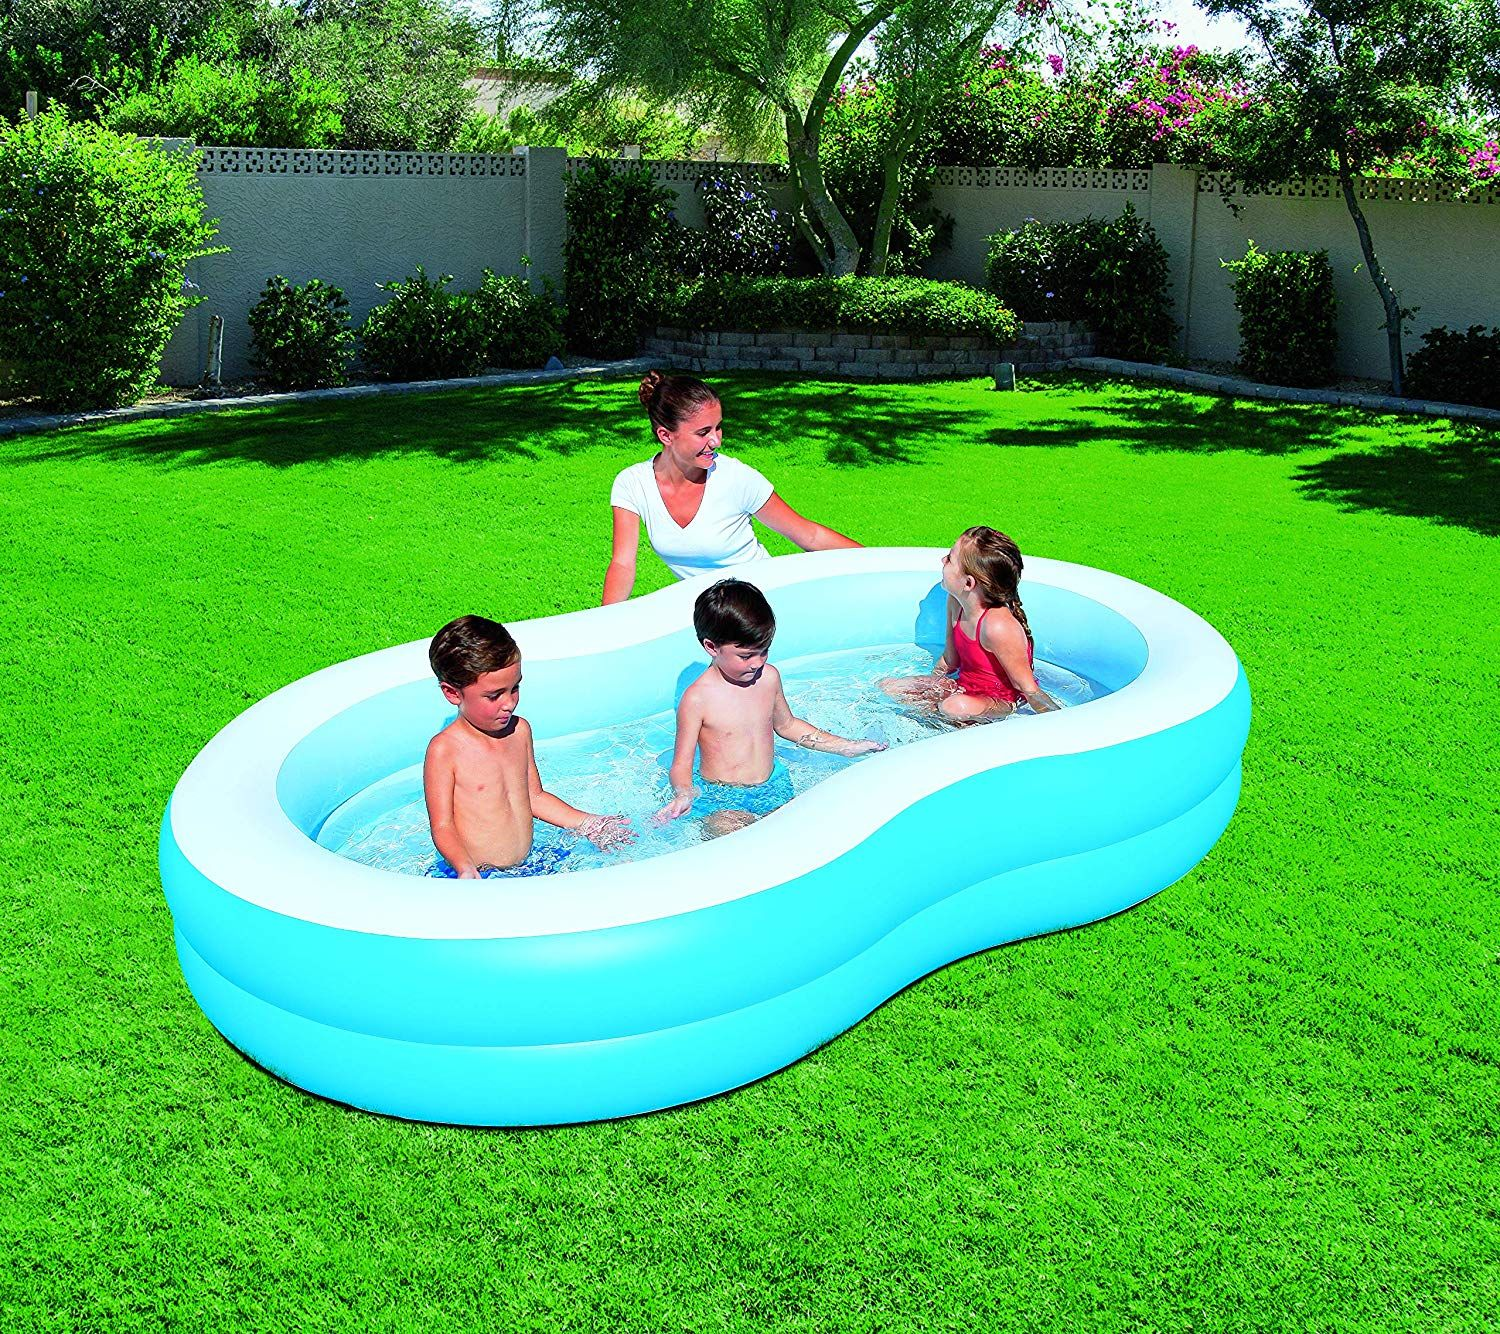 Bestway Inflatable The Big Lagoon Family Pool Inflatable The Big Lagoon Family Pool By Bestway Family Pool Pool Inflatable Pool